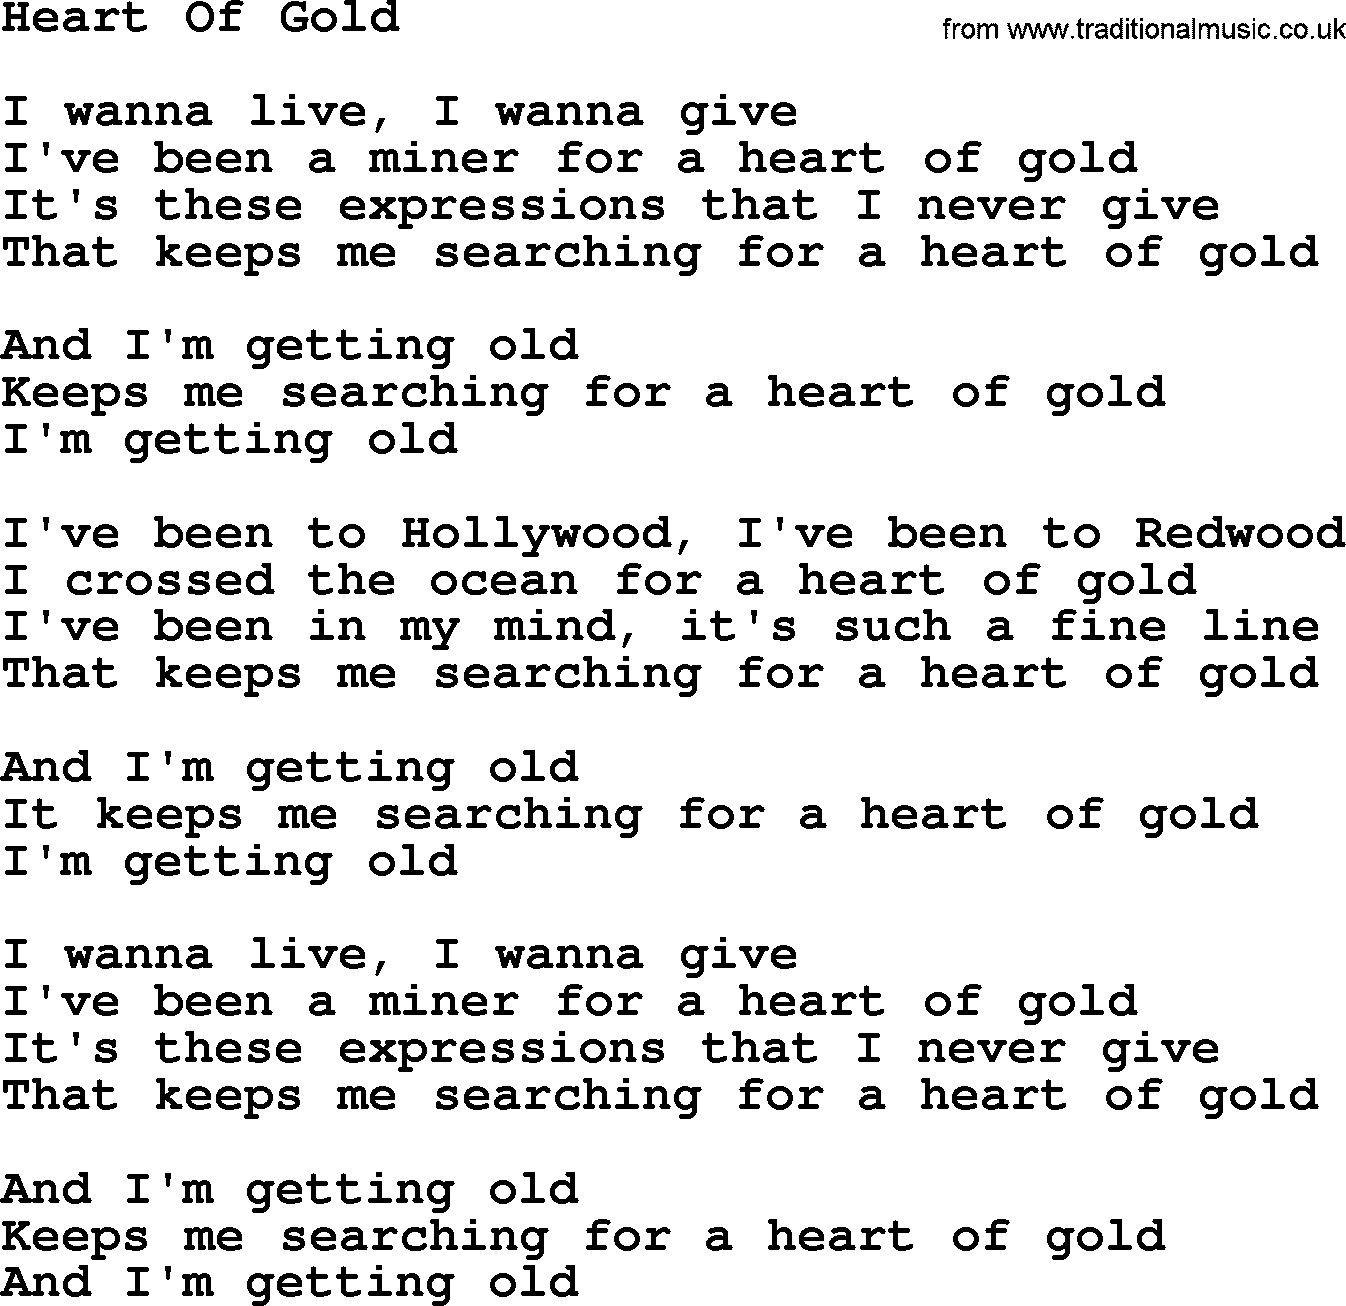 Willie Nelson song: Heart Of Gold, lyrics